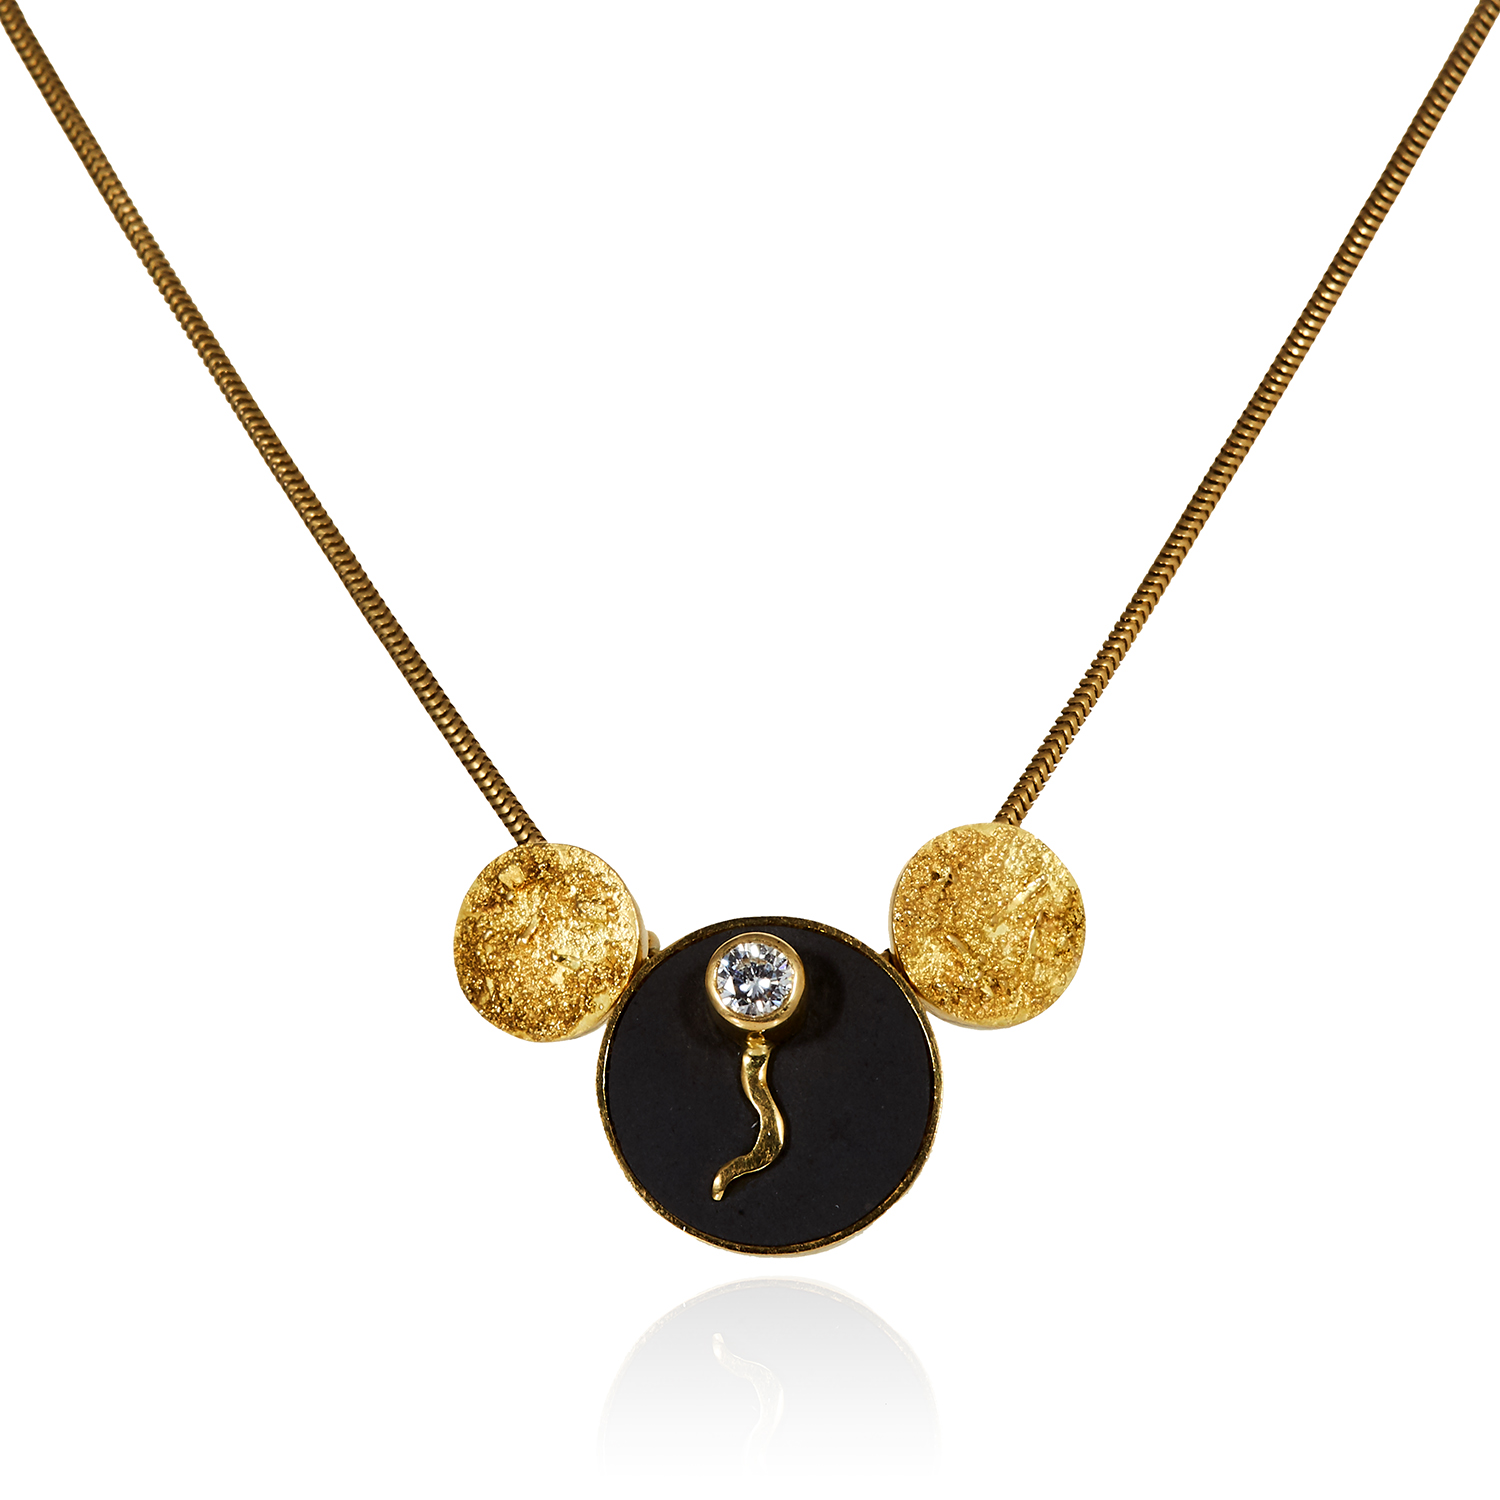 A DIAMOND AND ONYX PENDANT, NICOLA APPLEBY, CIRCA 1999 in 18ct yellow gold, comprising of a